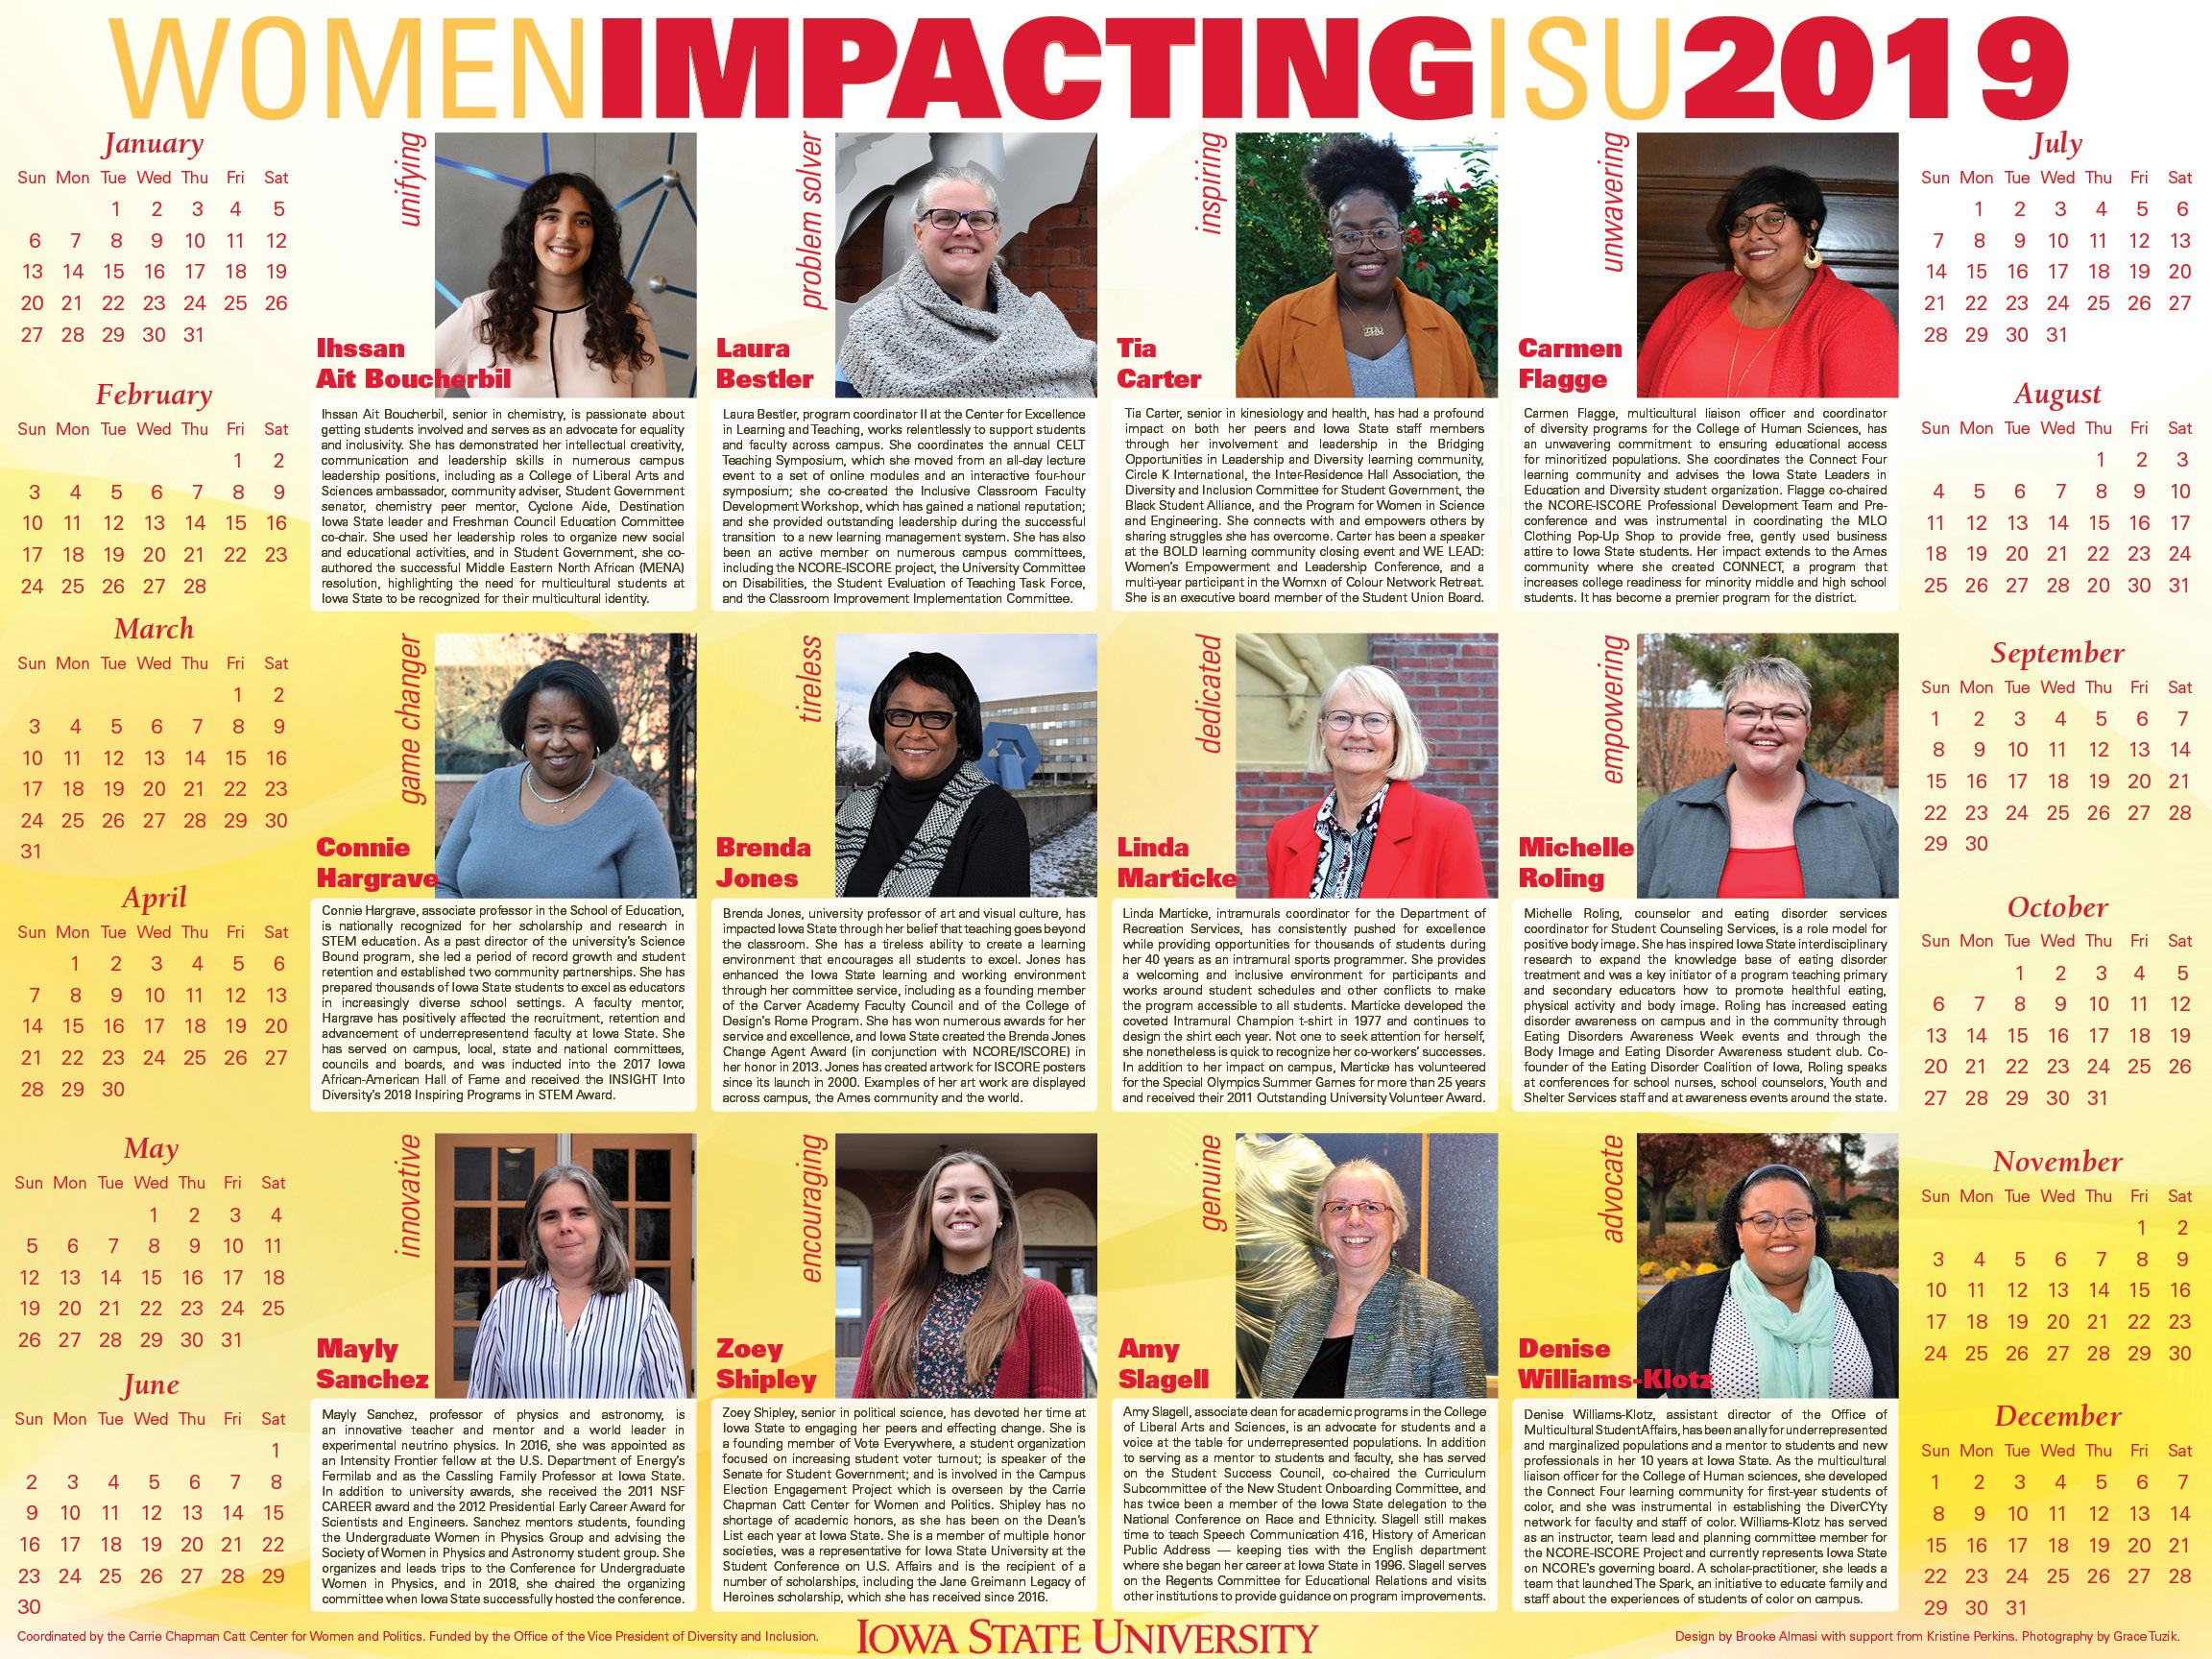 2019 Women Impacting ISU calendar